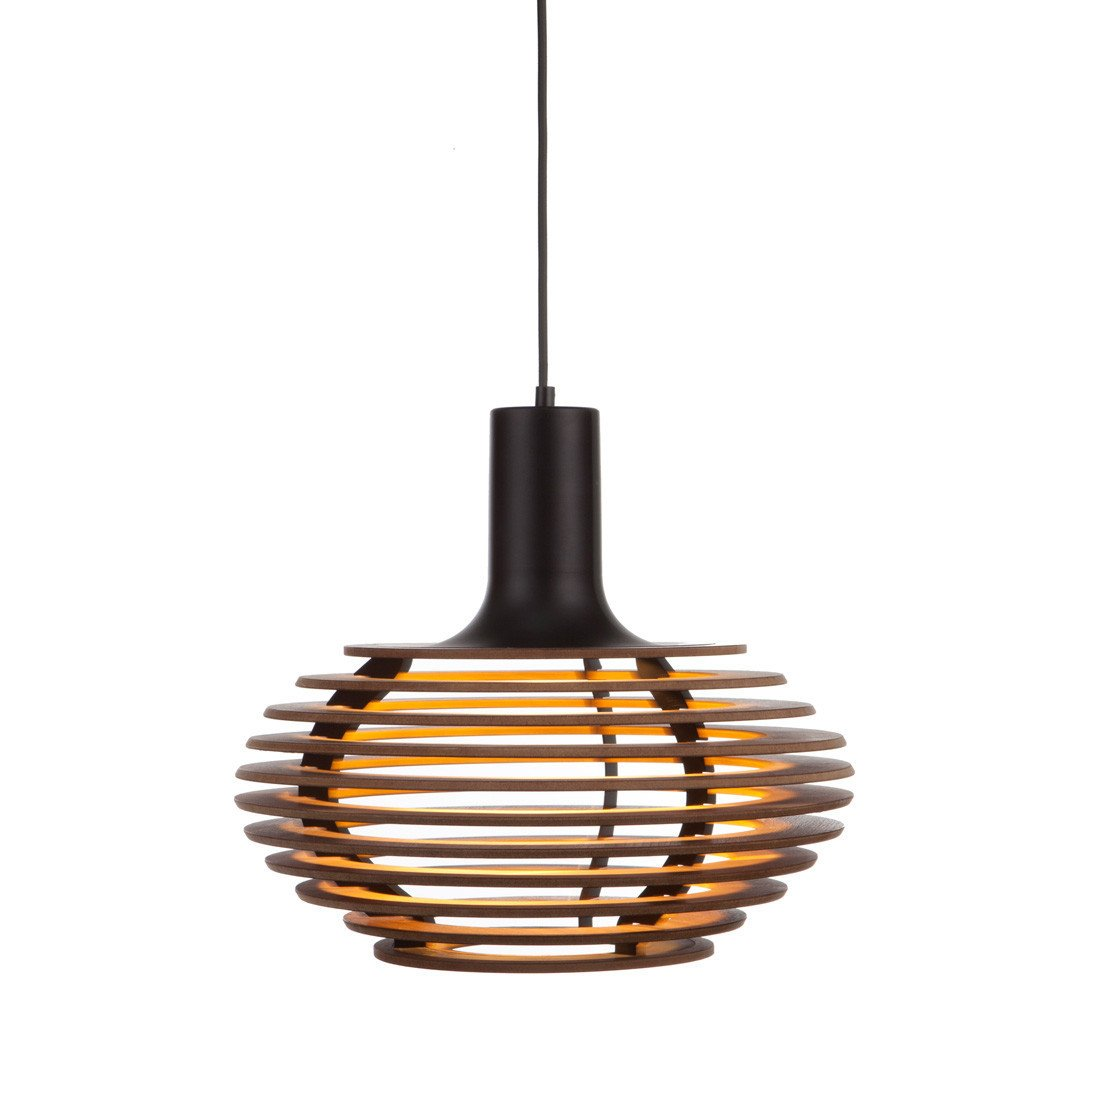 Dipper Pendant Light: Small + Walnut + Black